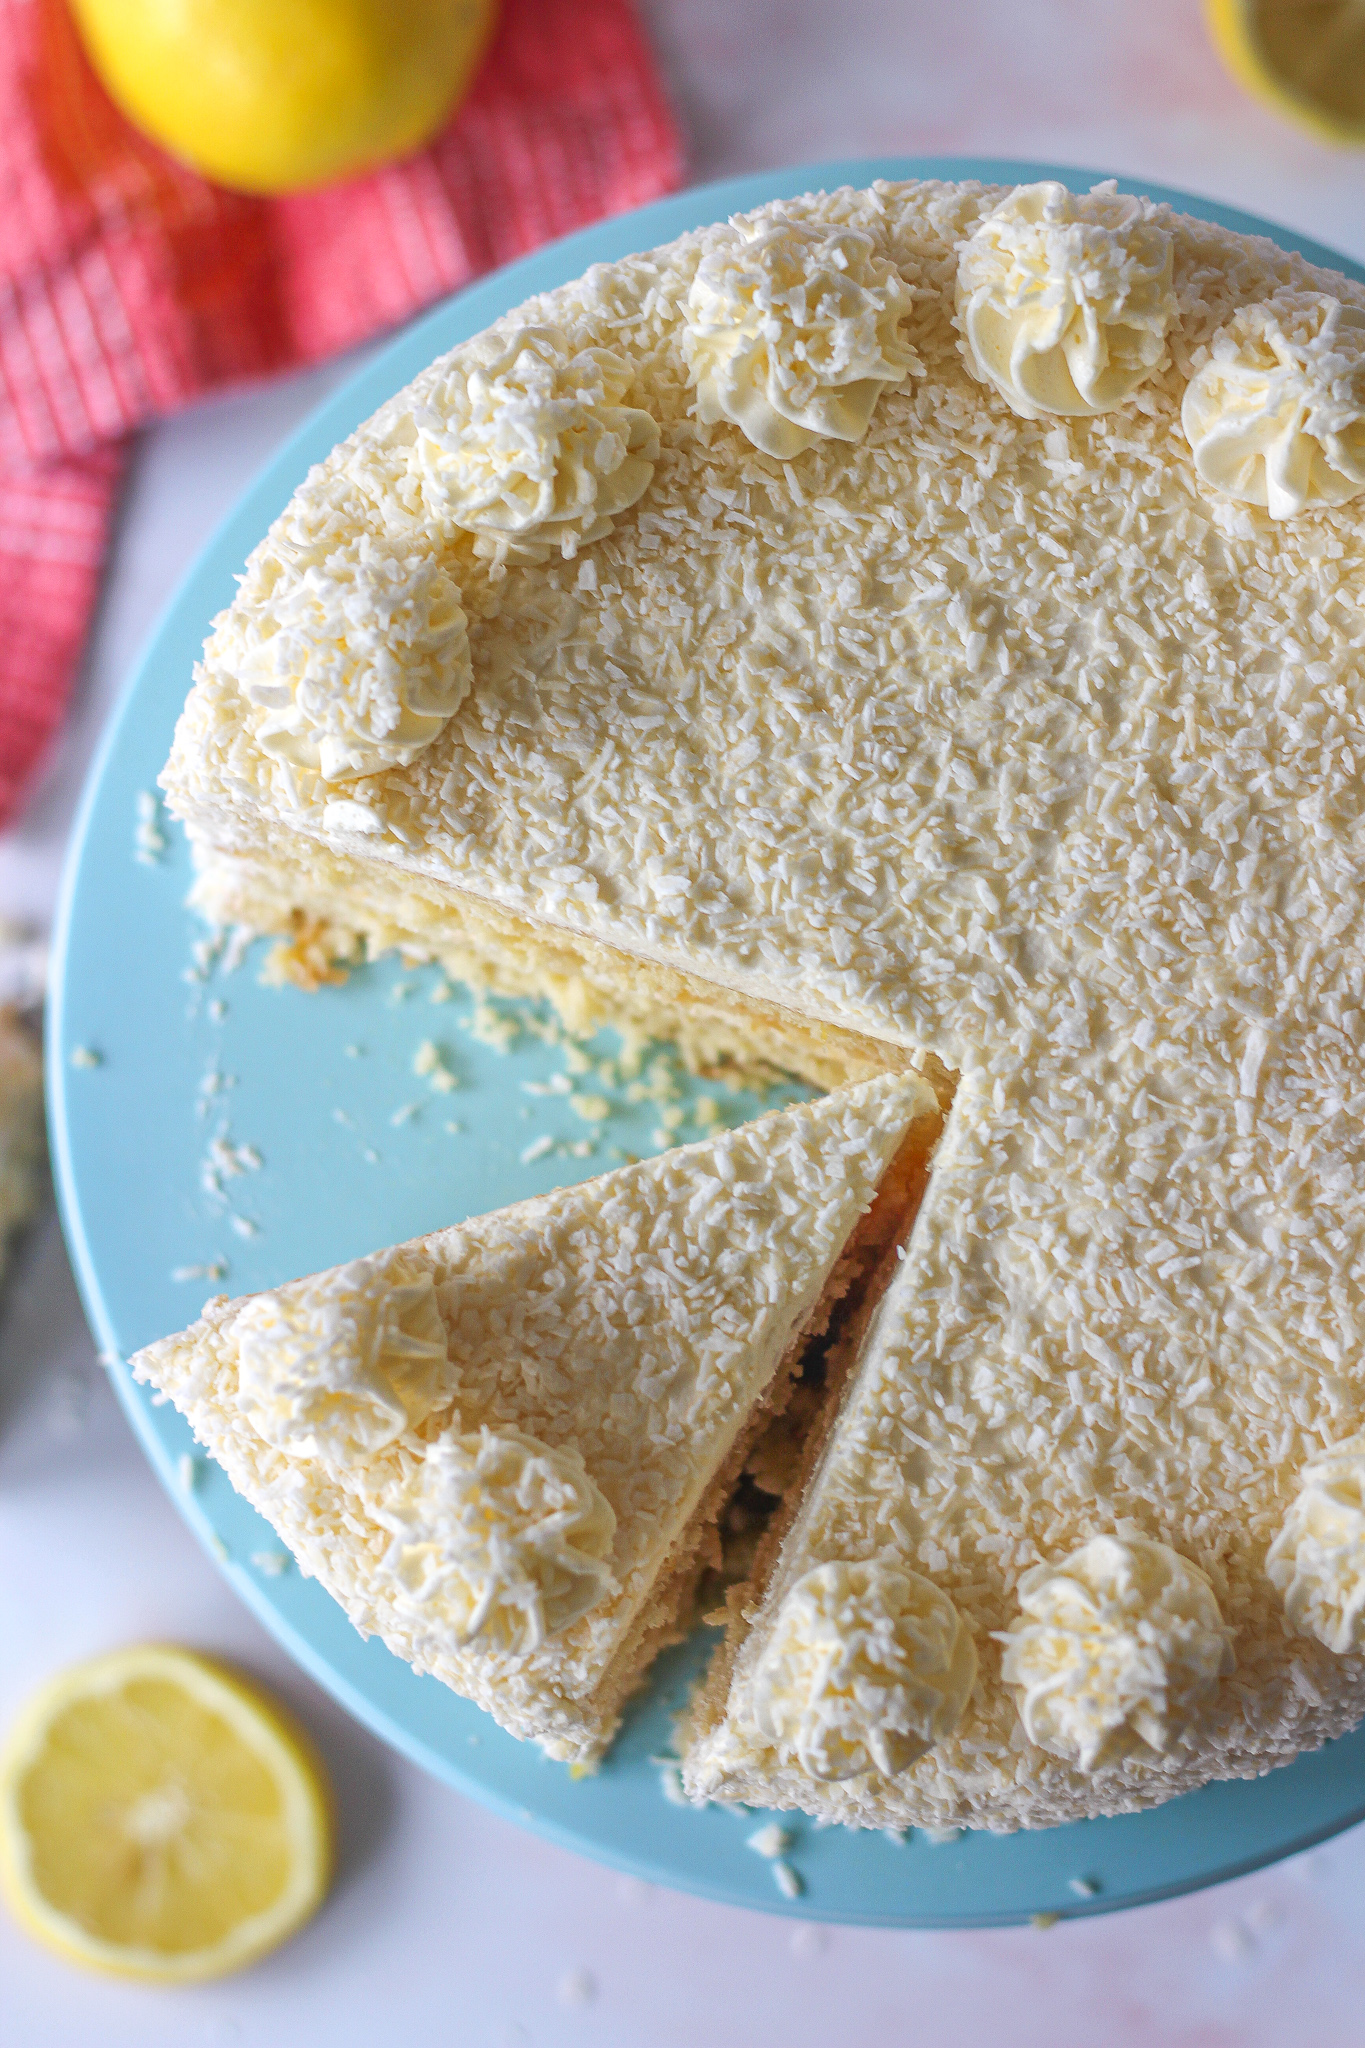 view from above of partly sliced lemon coconut layer cake